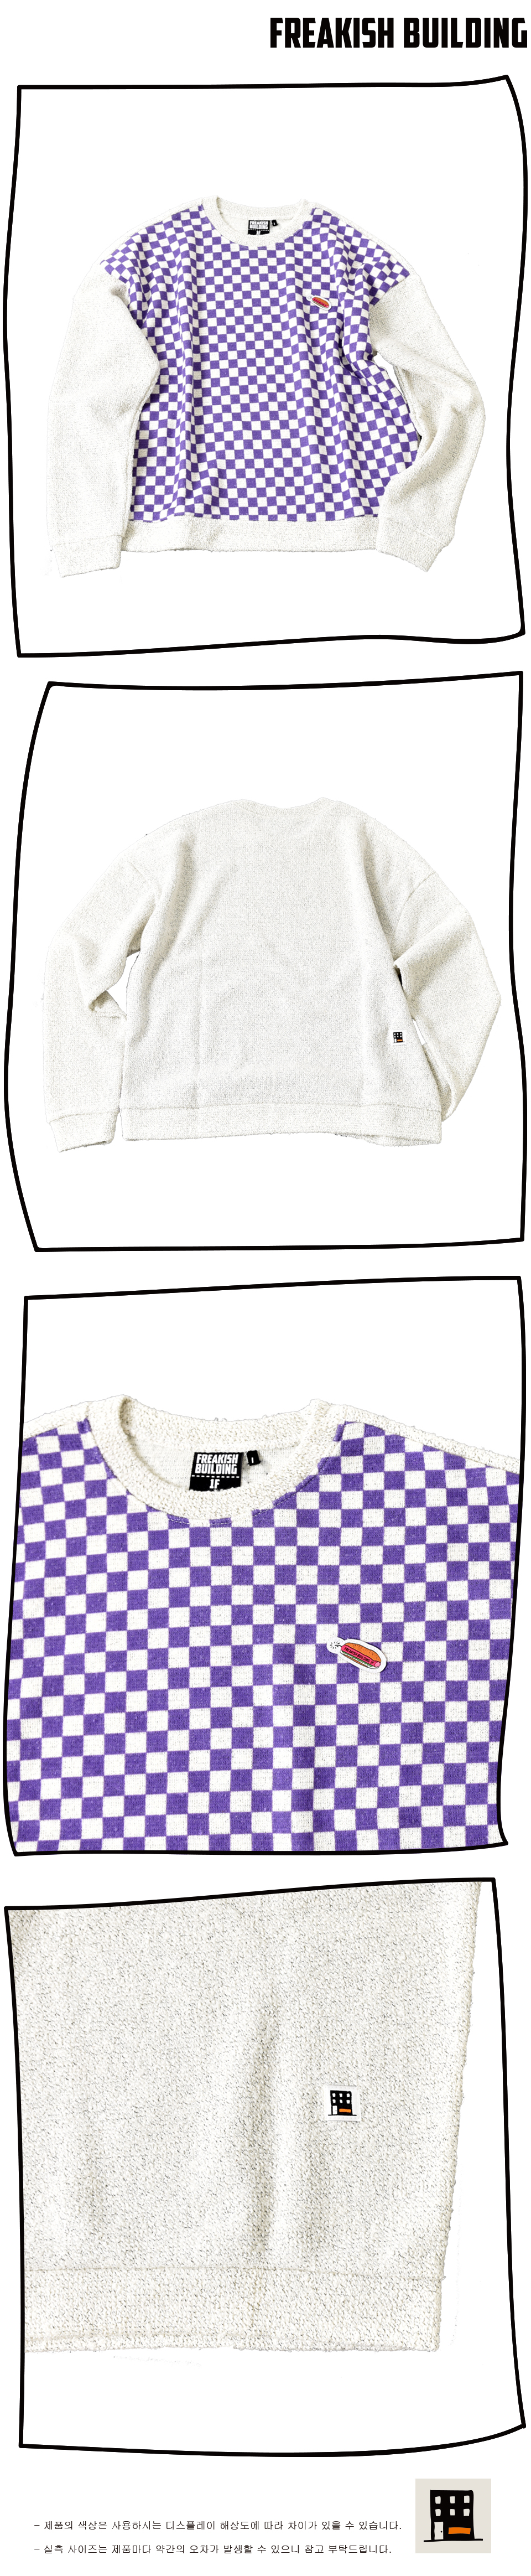 #13 BOING CHECKERBOARD SWEATER (VIOLET) 03.jpg